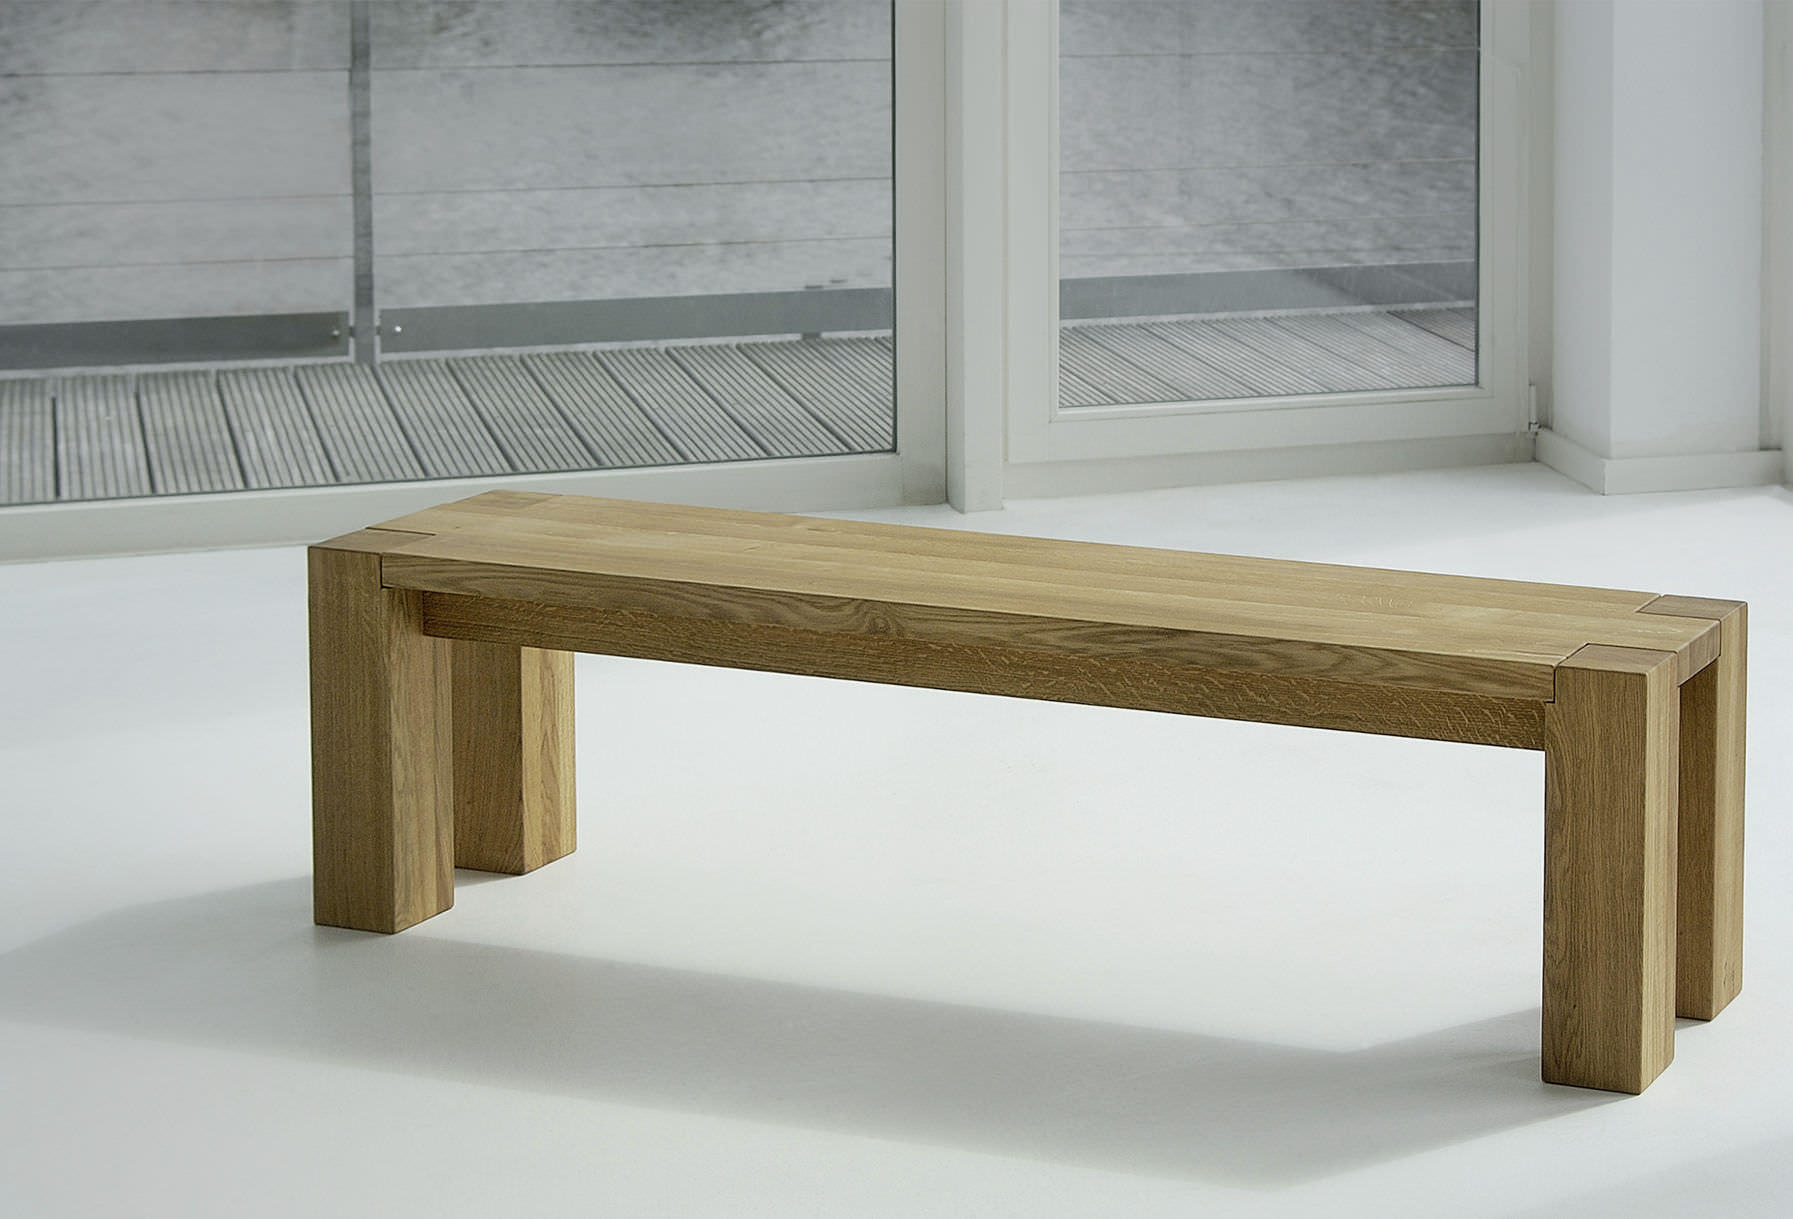 Contemporary bench / solid wood - TAURUS - vitamin design (Dona ...